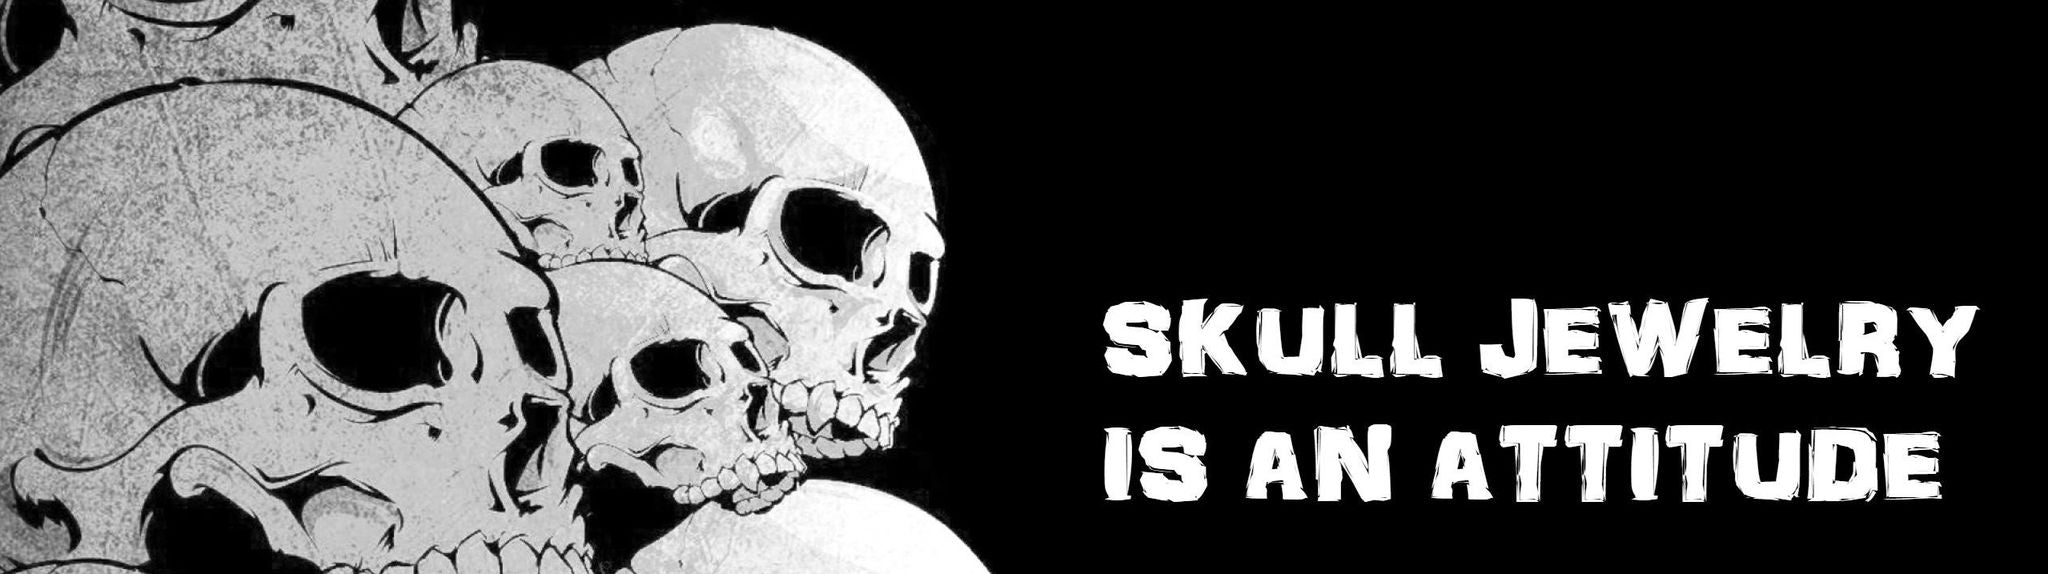 Skull Jewelry is an attitude